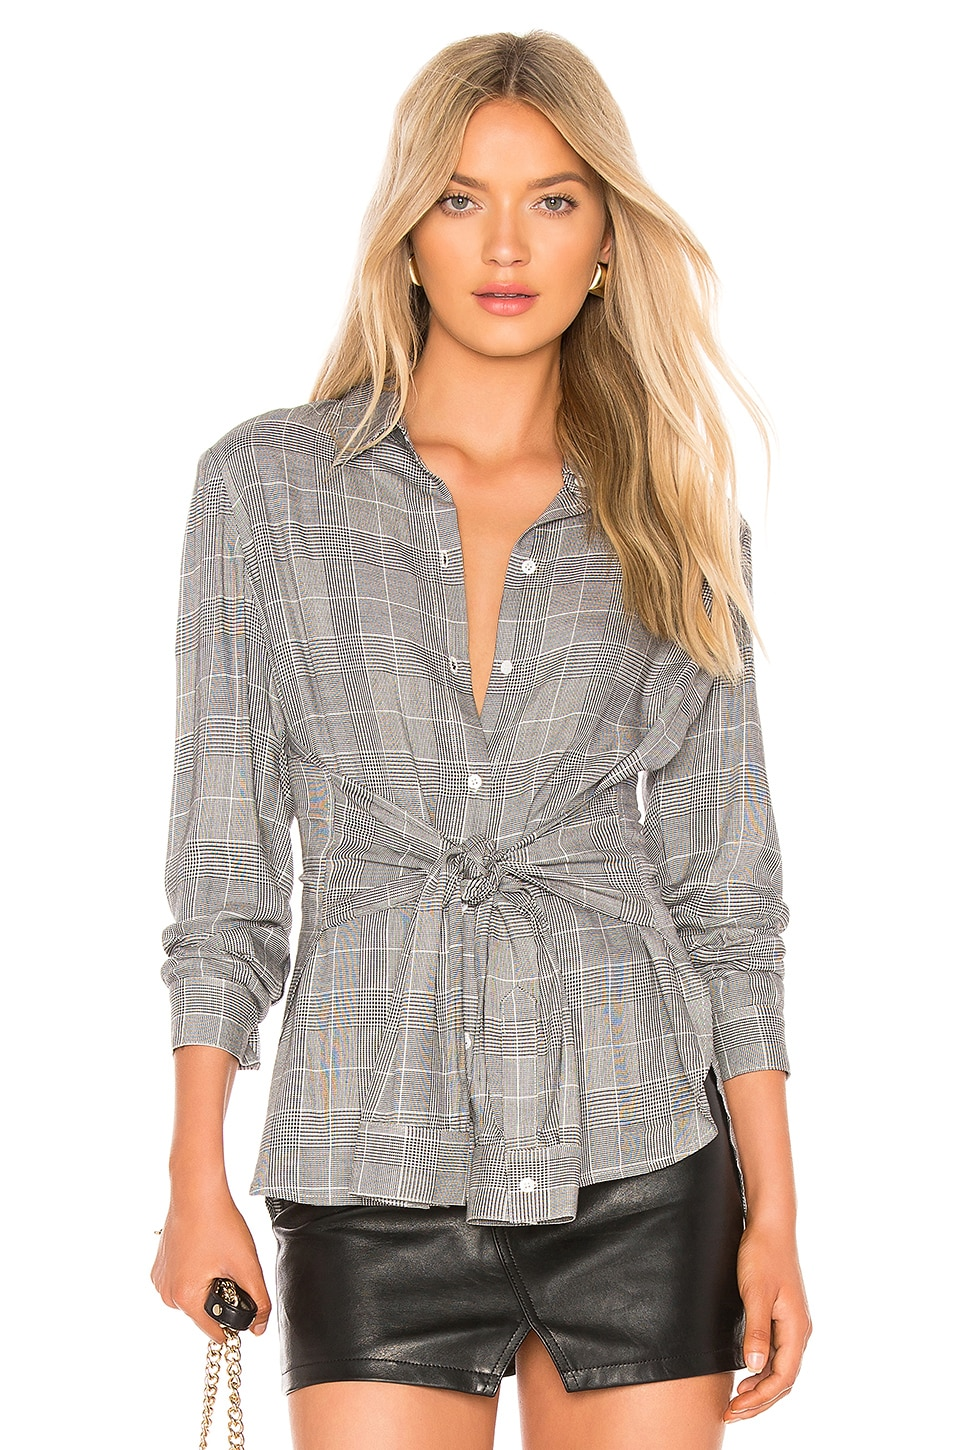 Bailey 44 Hold Me Tight Top en Plaid Multi